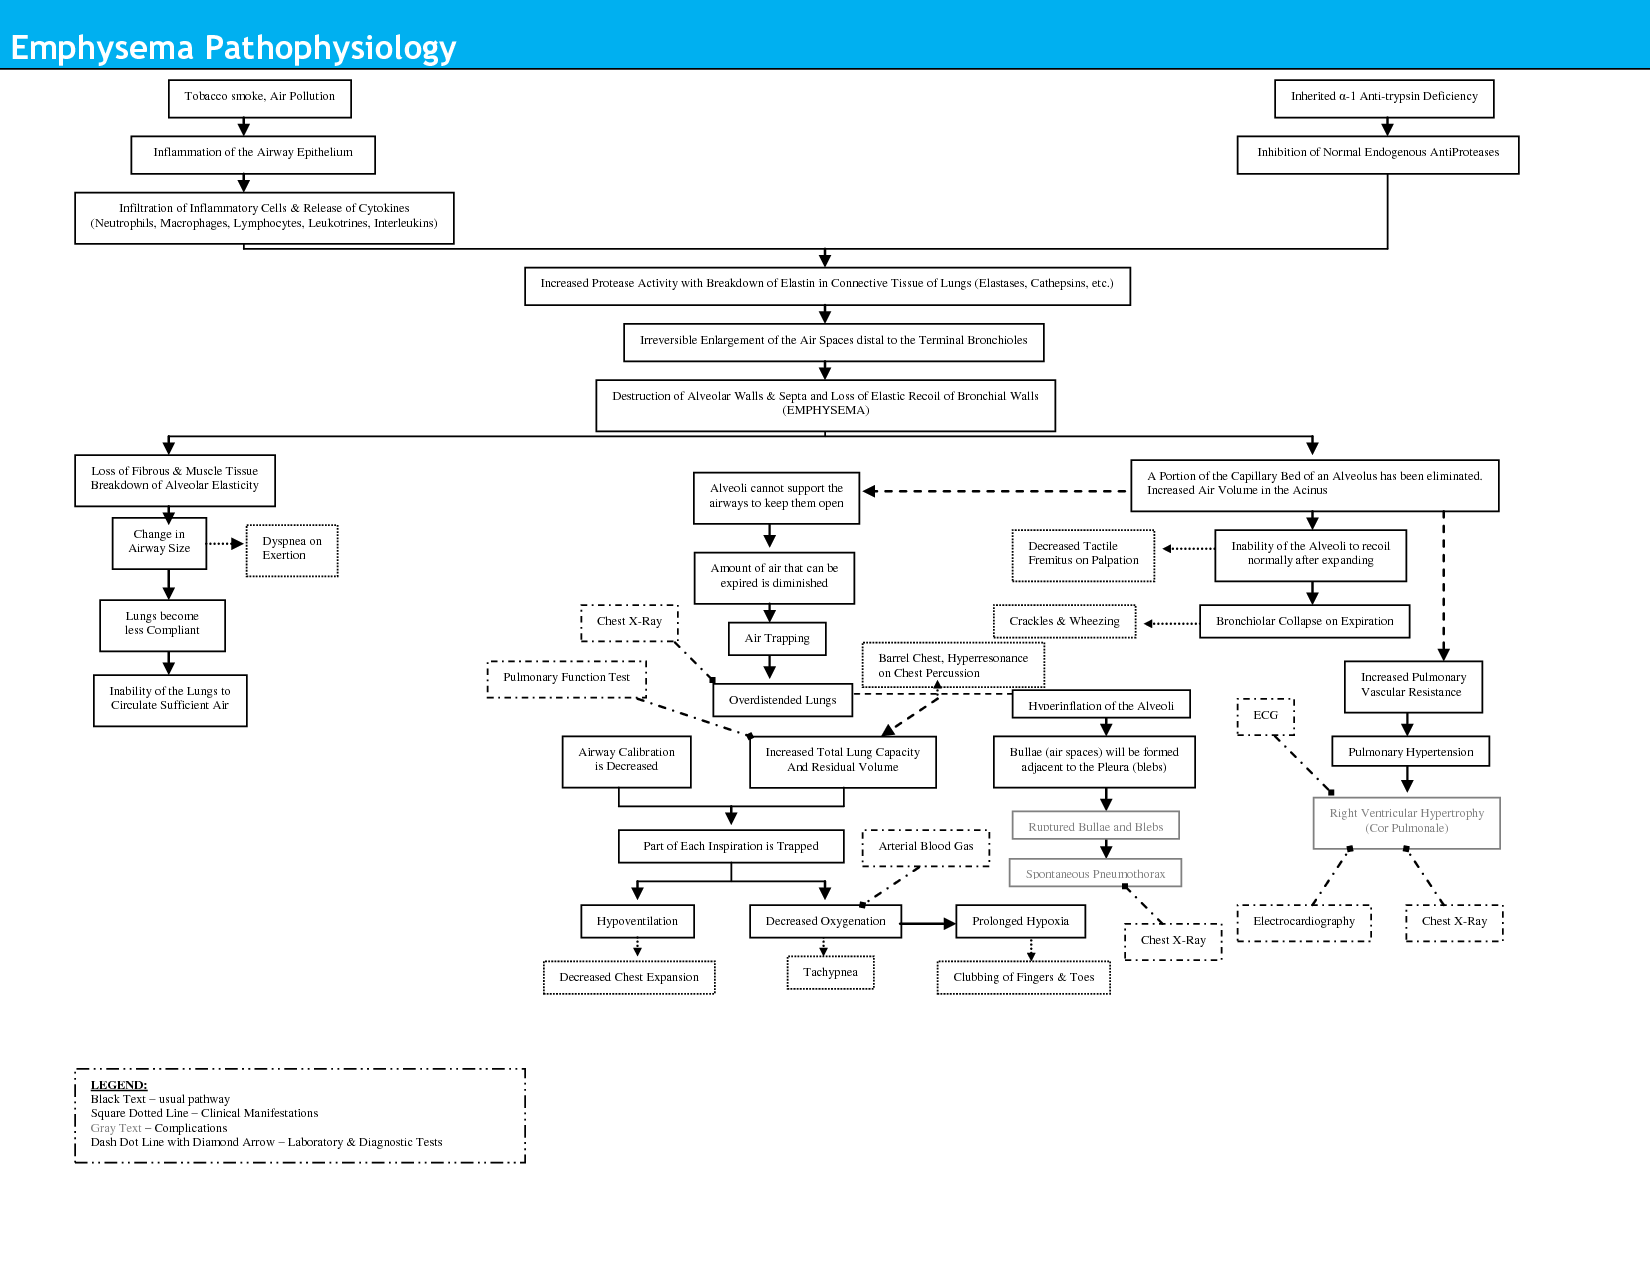 Pathophysiology Concept Map | Emphysema Pathophysiology ...